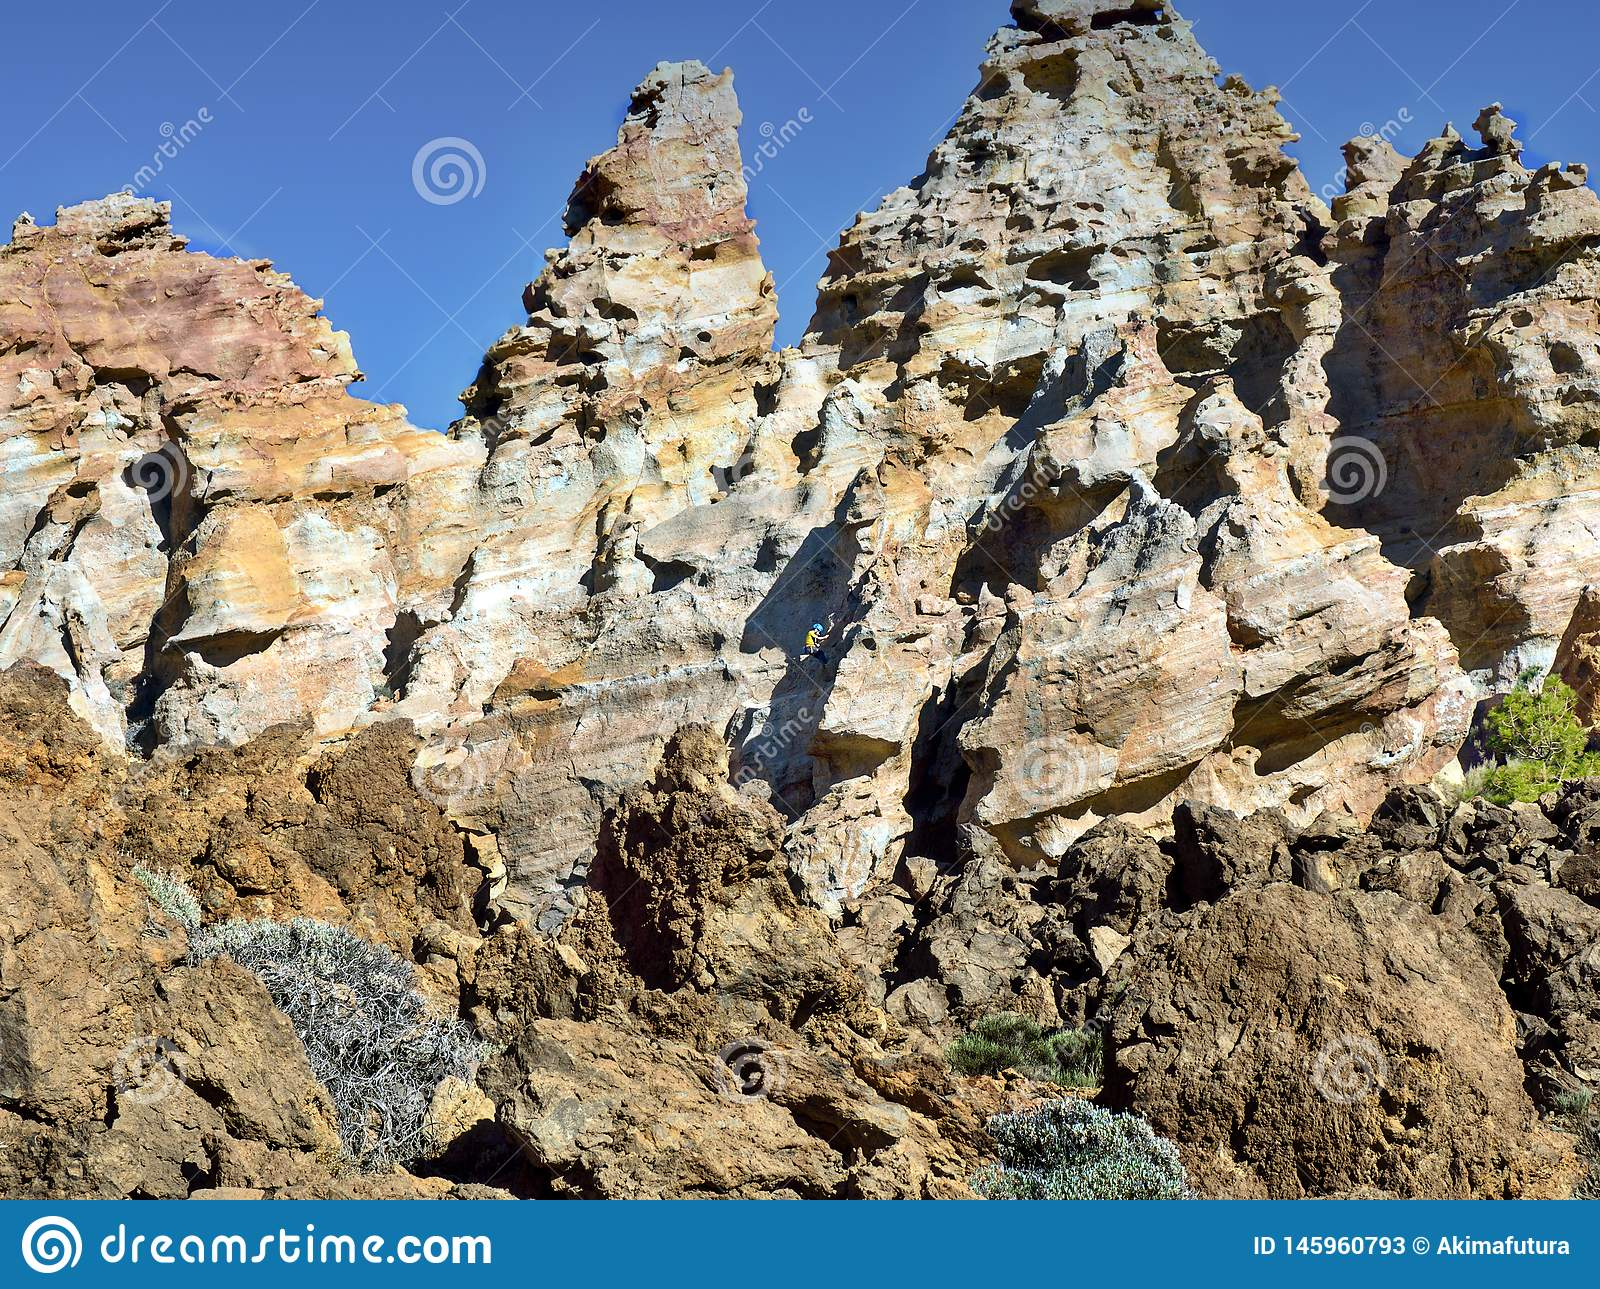 The `Azujelos` on tenerife, colorful rocks in turquoise, rust-red, pink and vanilla in bizarre forms at 2300 m altitude